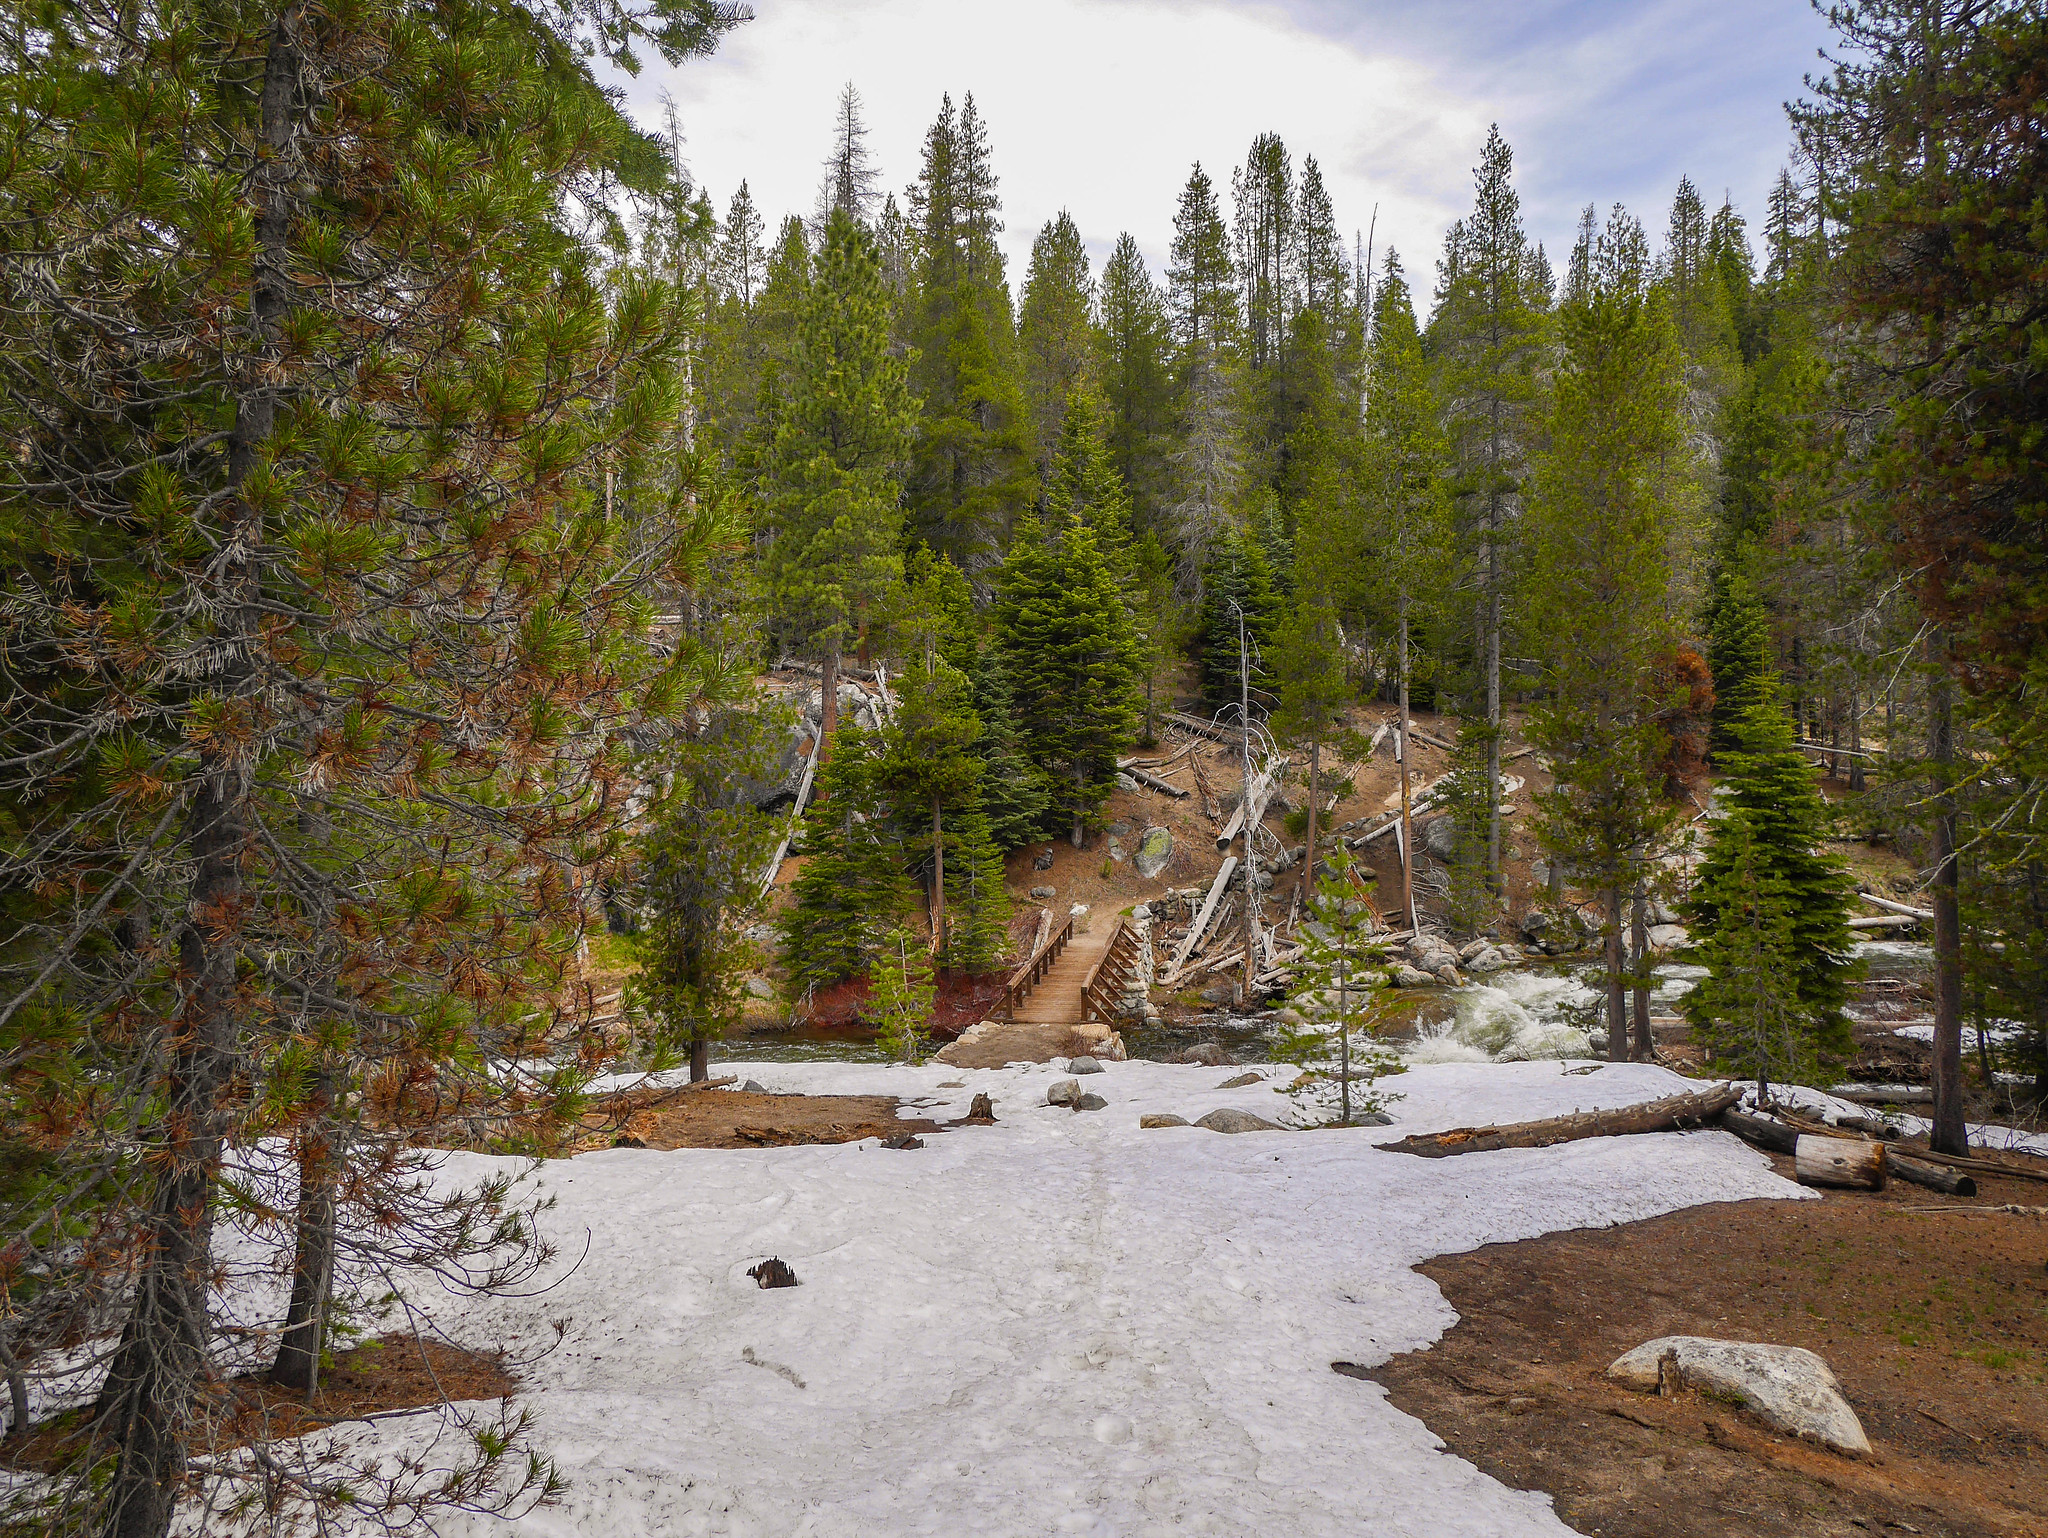 Tons of downed trees and snow between Dewey and Taft Points